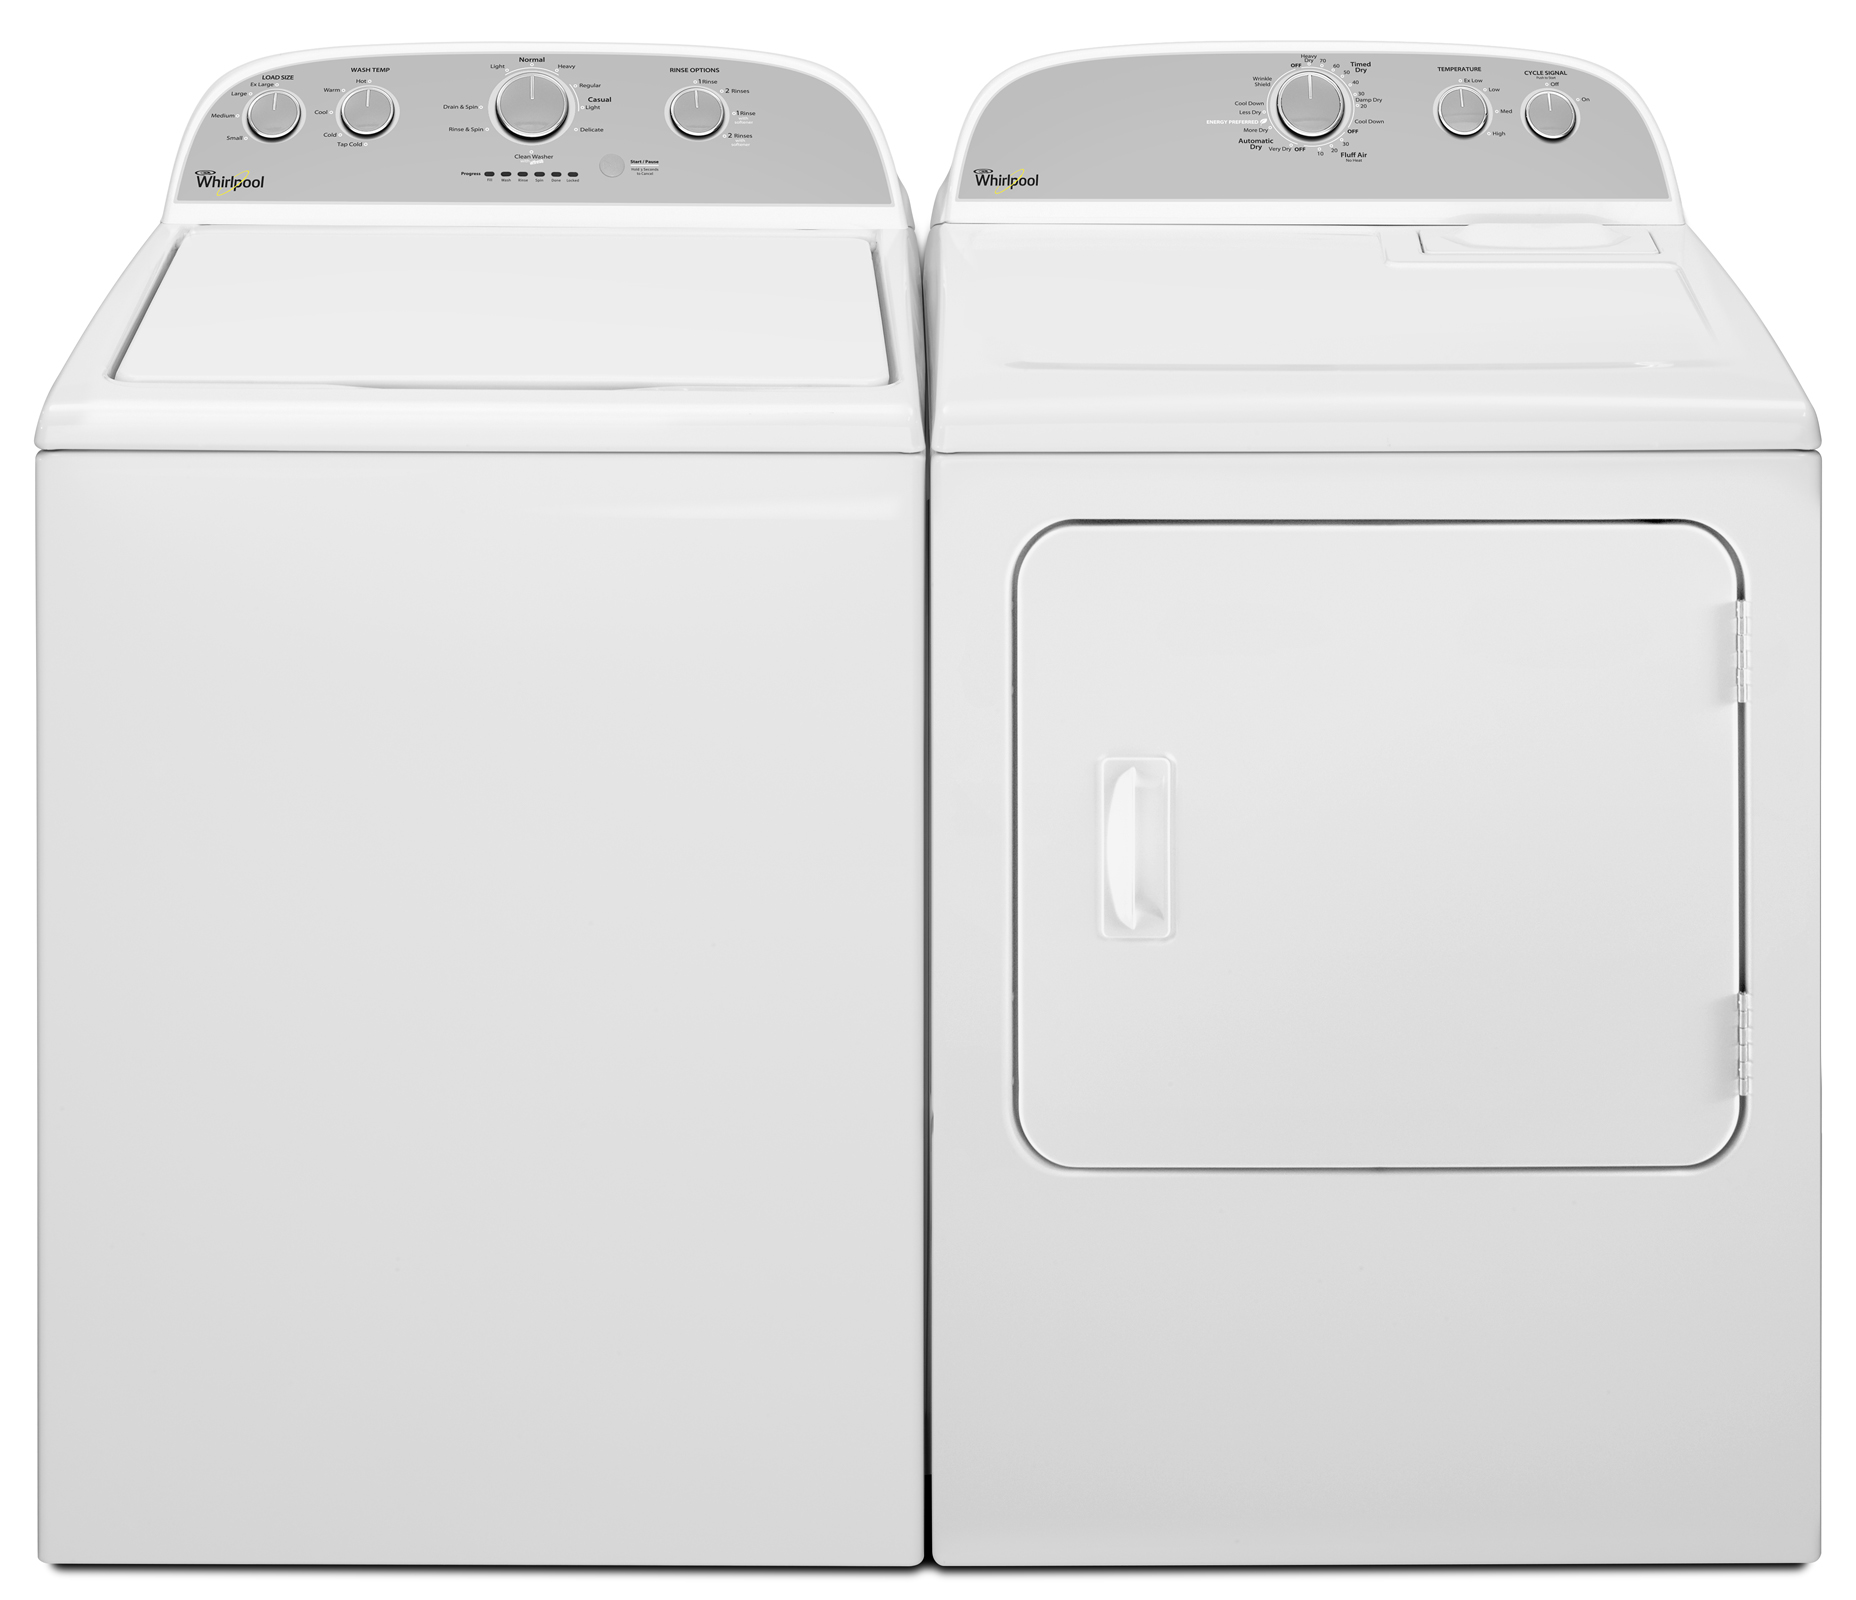 Whirlpool 3.6 cu. ft. Top-Load Washer w/ Care Control Temperature Management - White